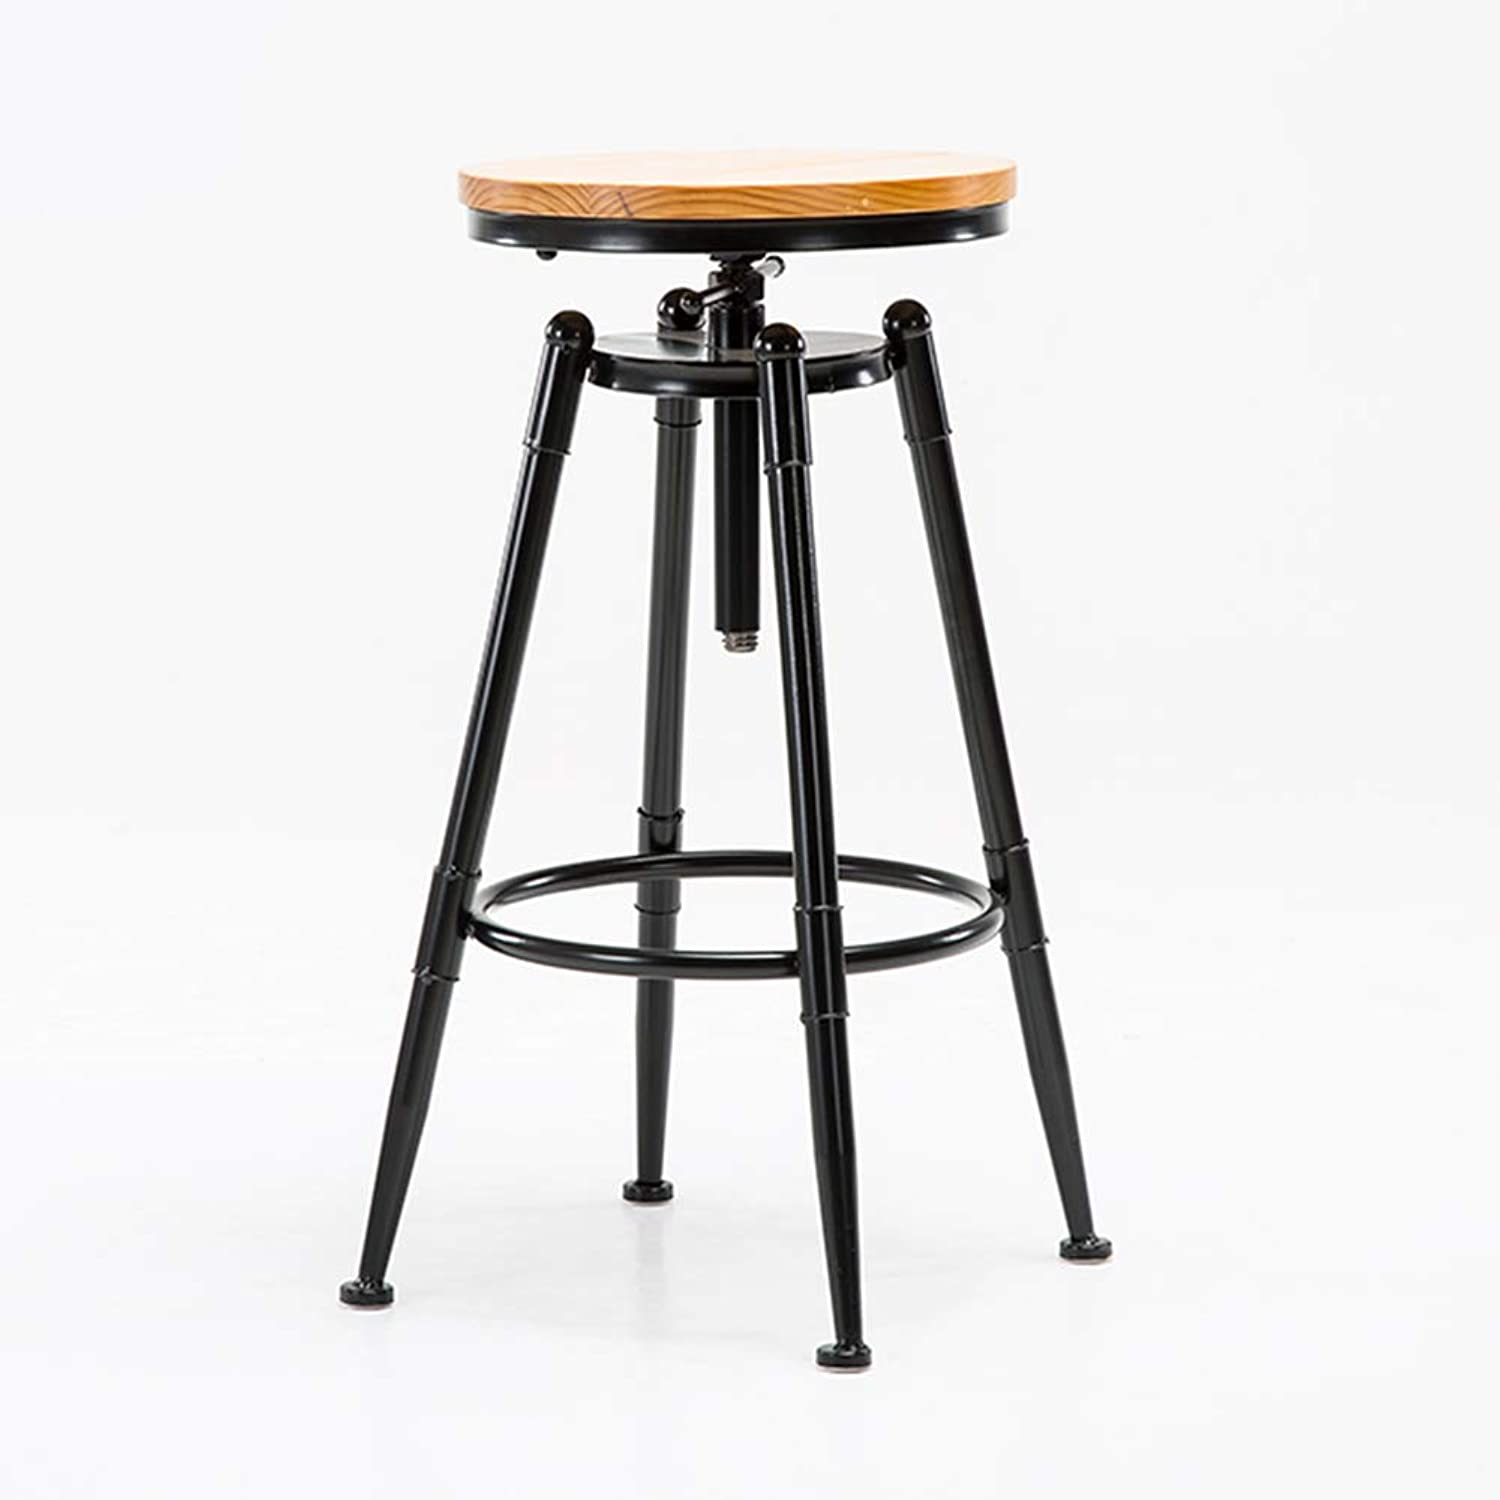 European redating Bar Chair, Retro High Stool Coffee Chair,Solid Wood Cushion,for Pub Counter Cafe Kitchen Hairdressing